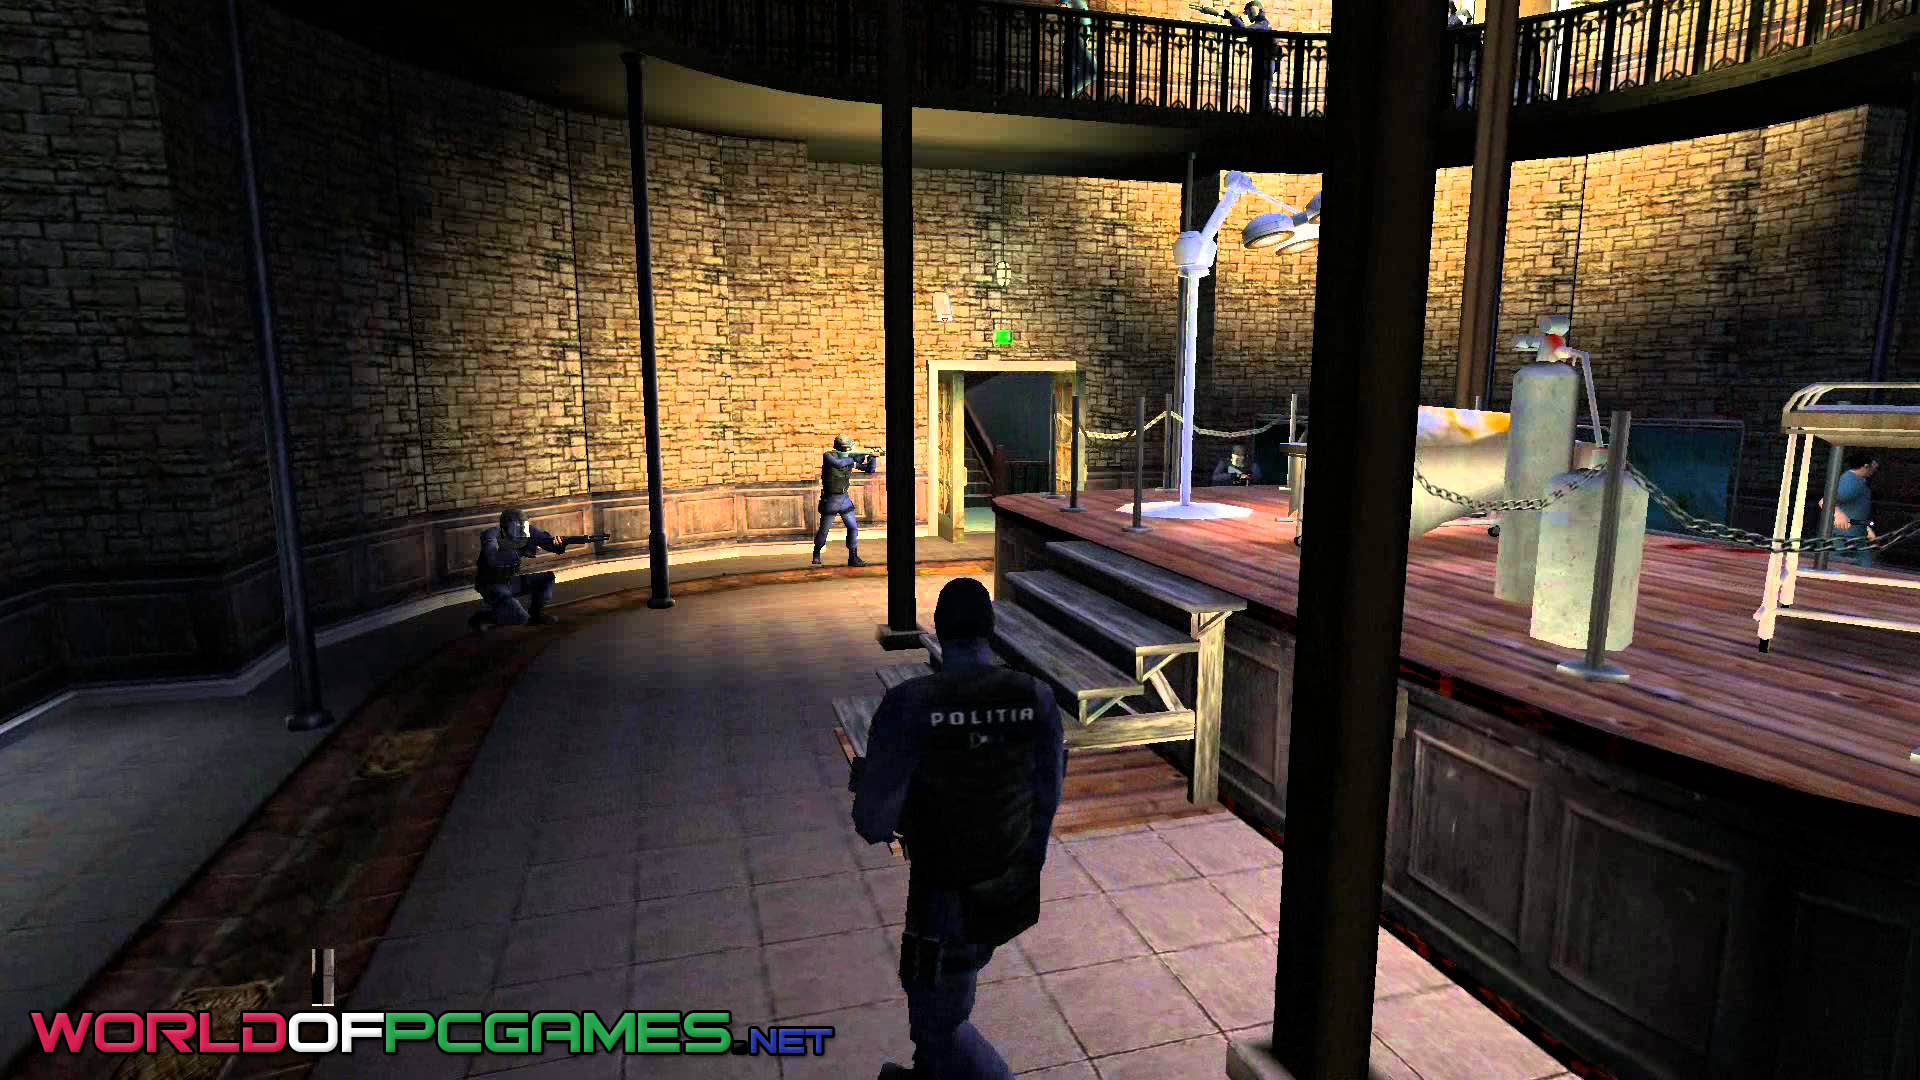 Hitman 3 Free Download By Worldofpcgames.net